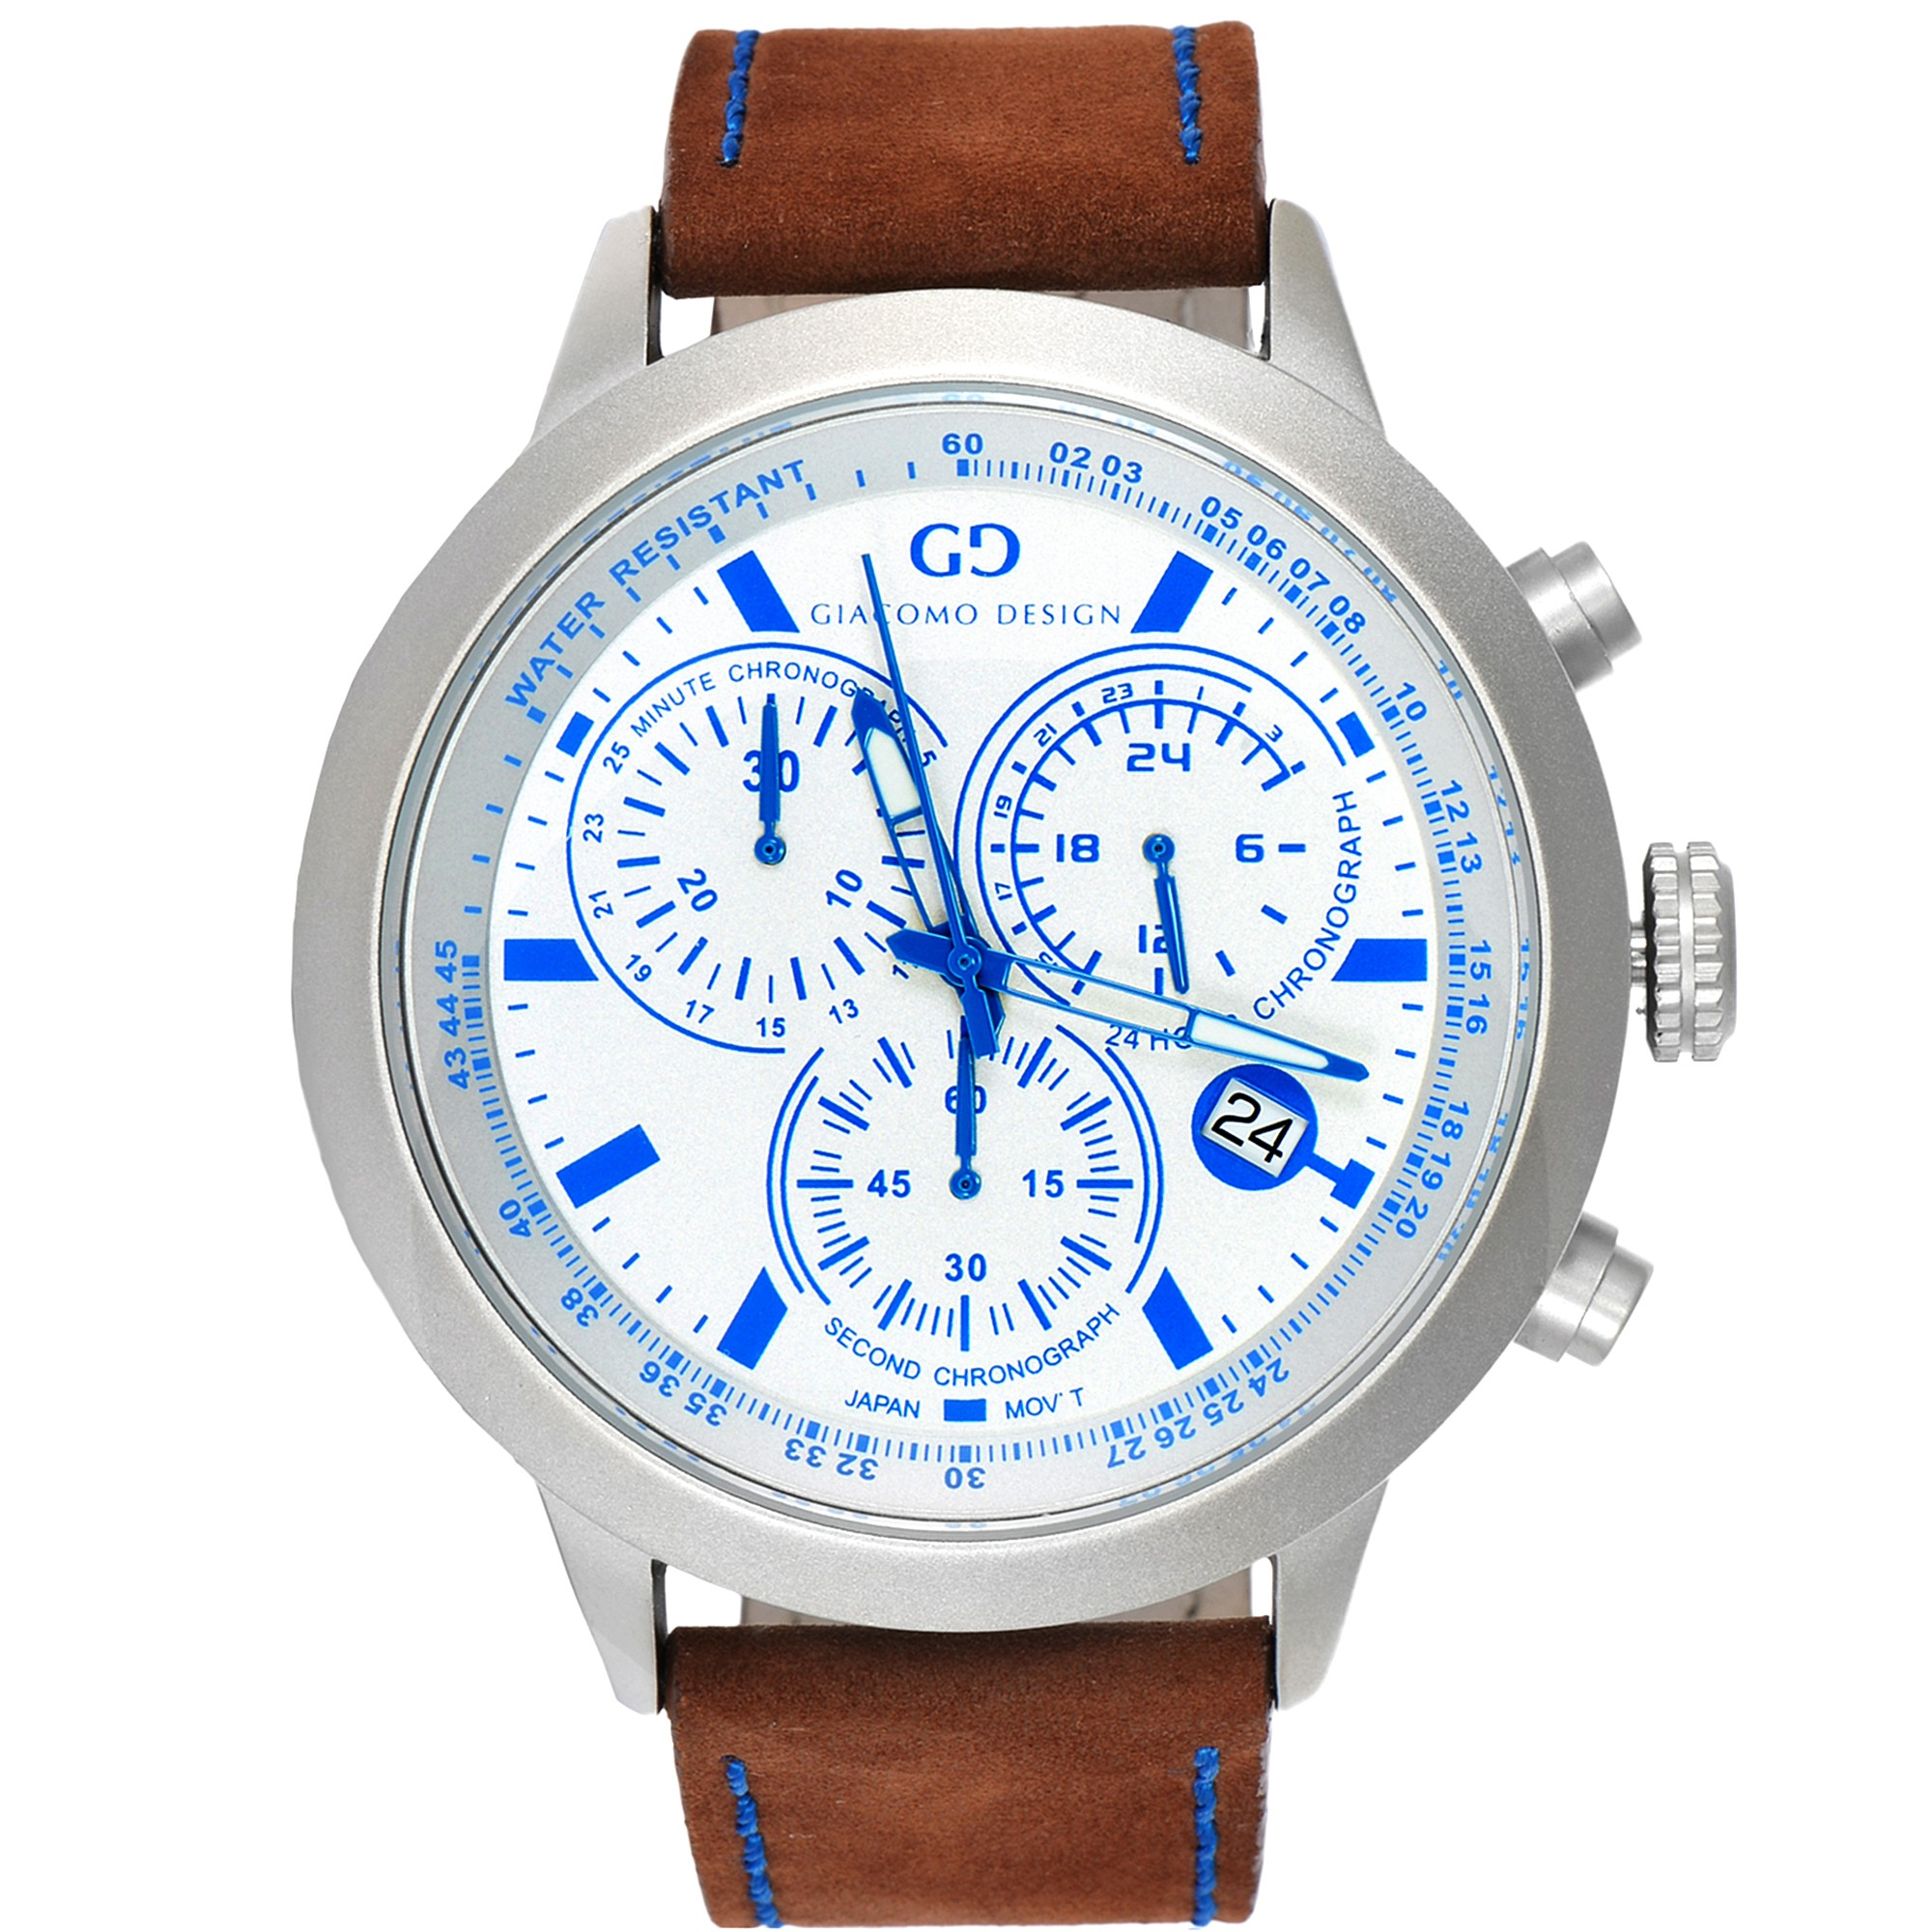 grand moonphase ward watches fr design cb malvern christopher